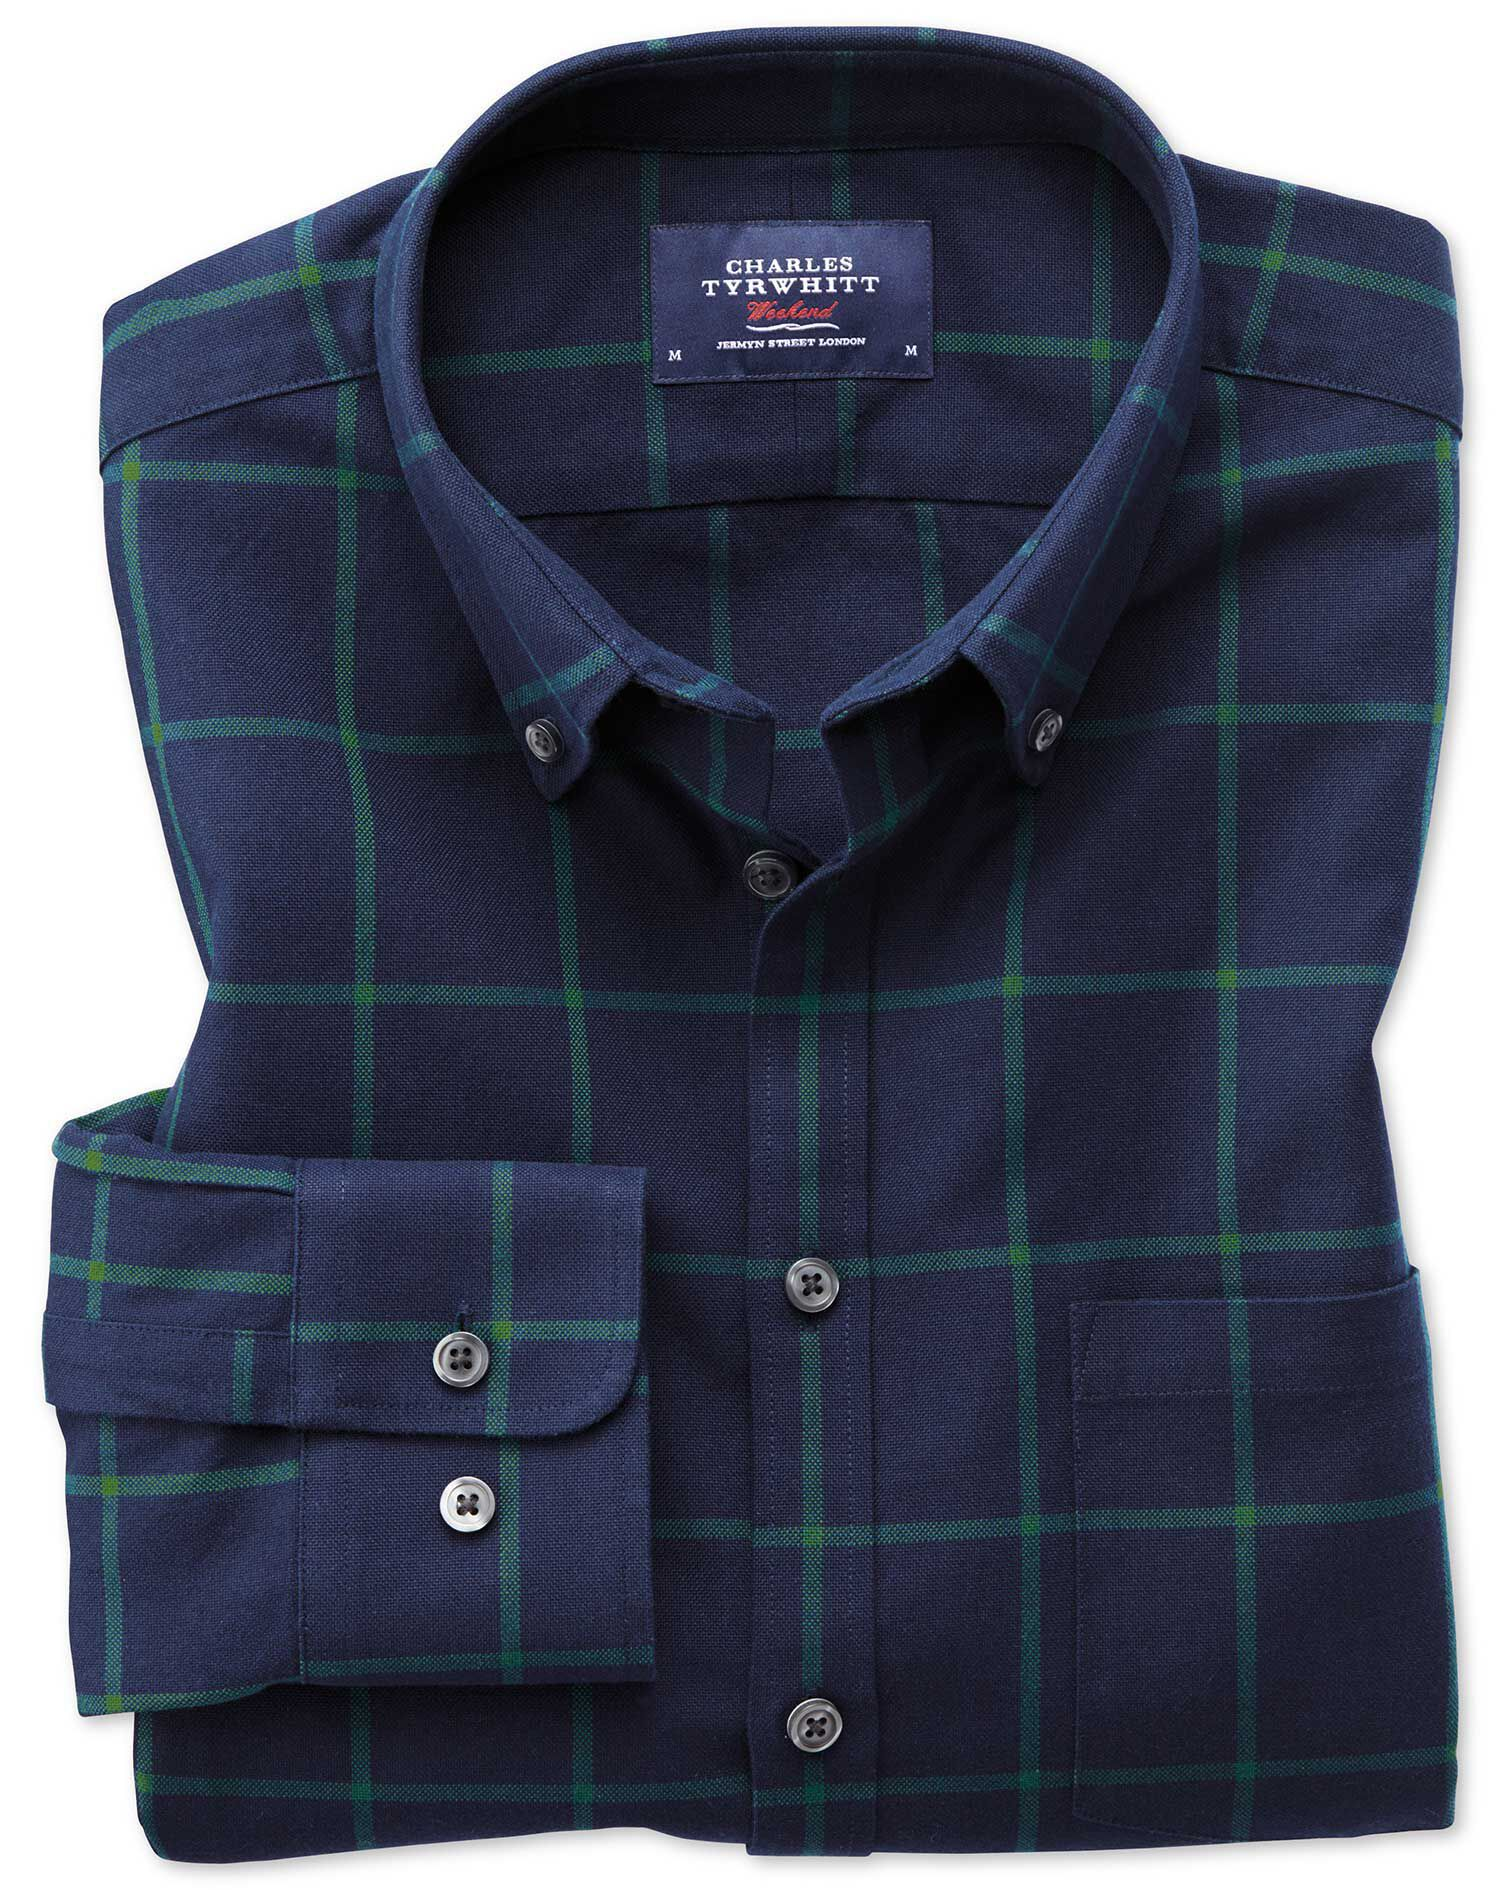 Classic Fit Button-Down Washed Oxford Navy Blue and Green Check Cotton Shirt Single Cuff Size Large